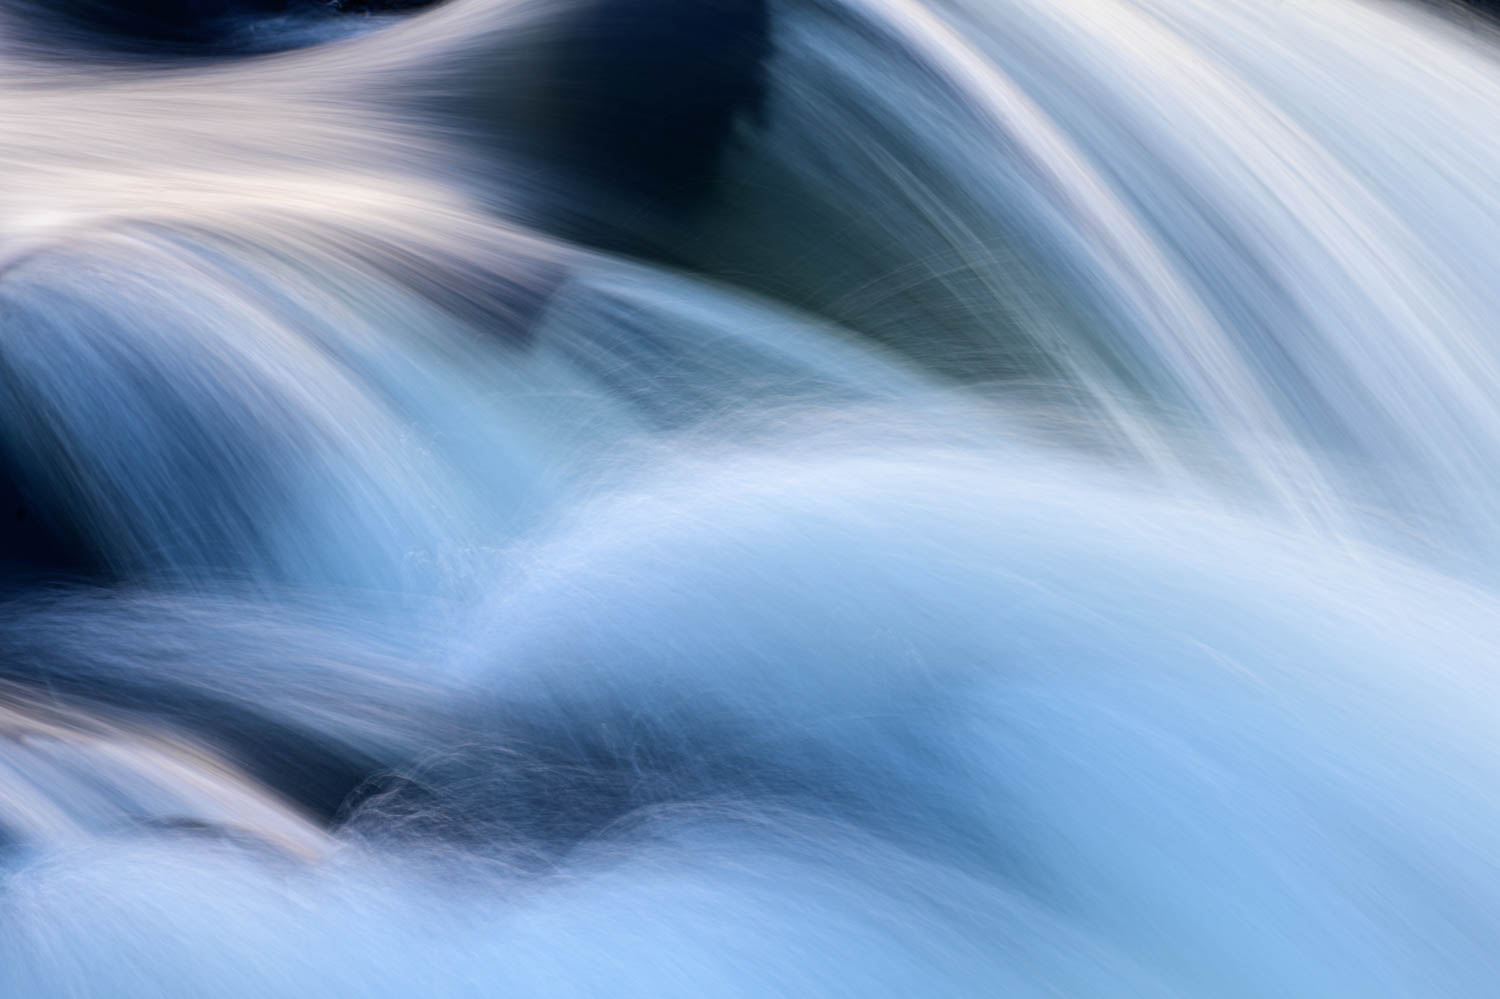 This photo depicts rushing water falling over rocks in Great Falls National Park, Virginia.